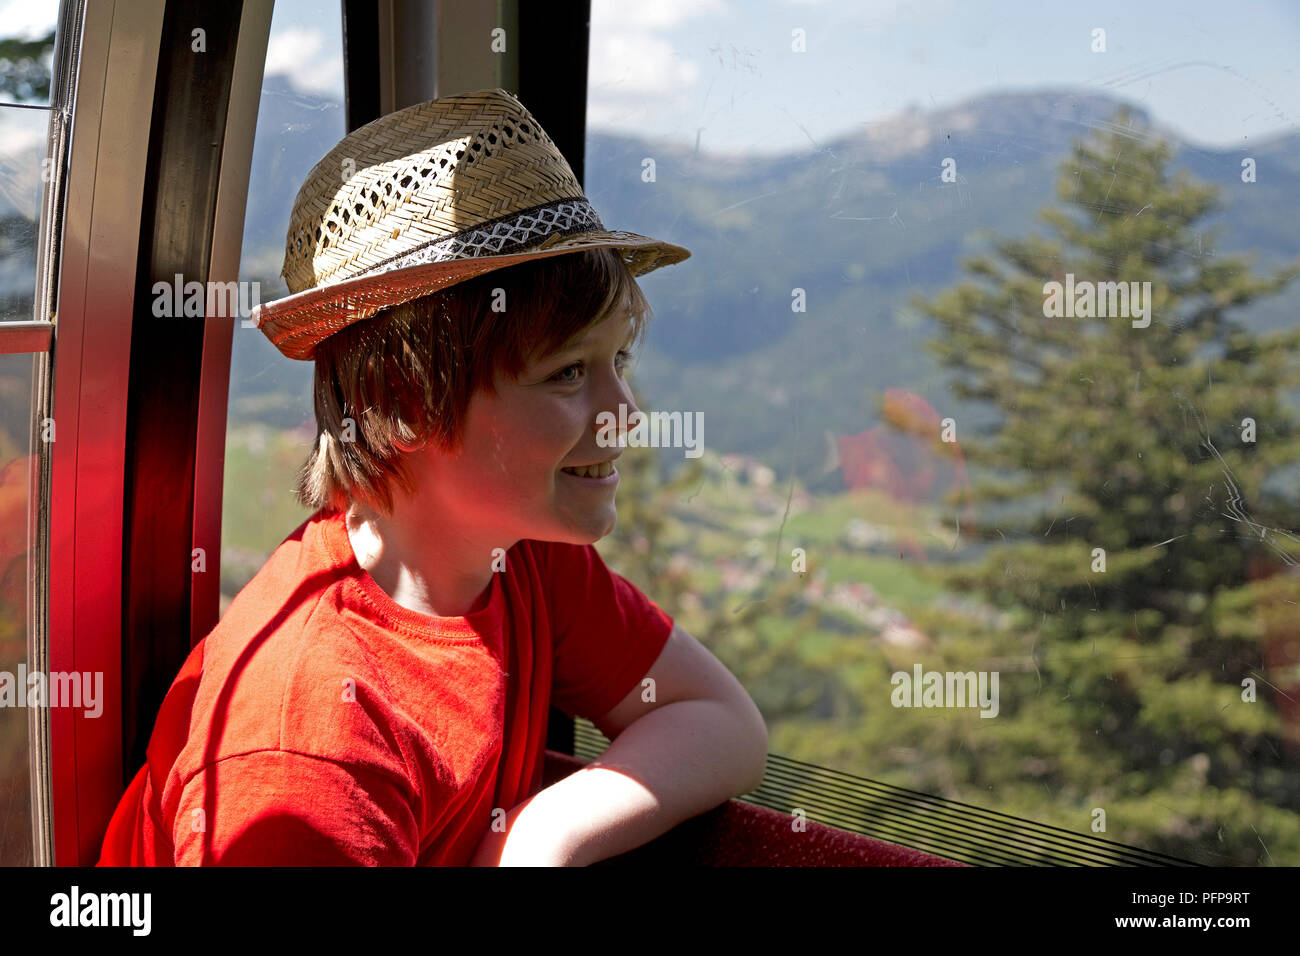 boy in Kanzelwand cable car, Riezlern, little Walser valley, Austria Stock Photo